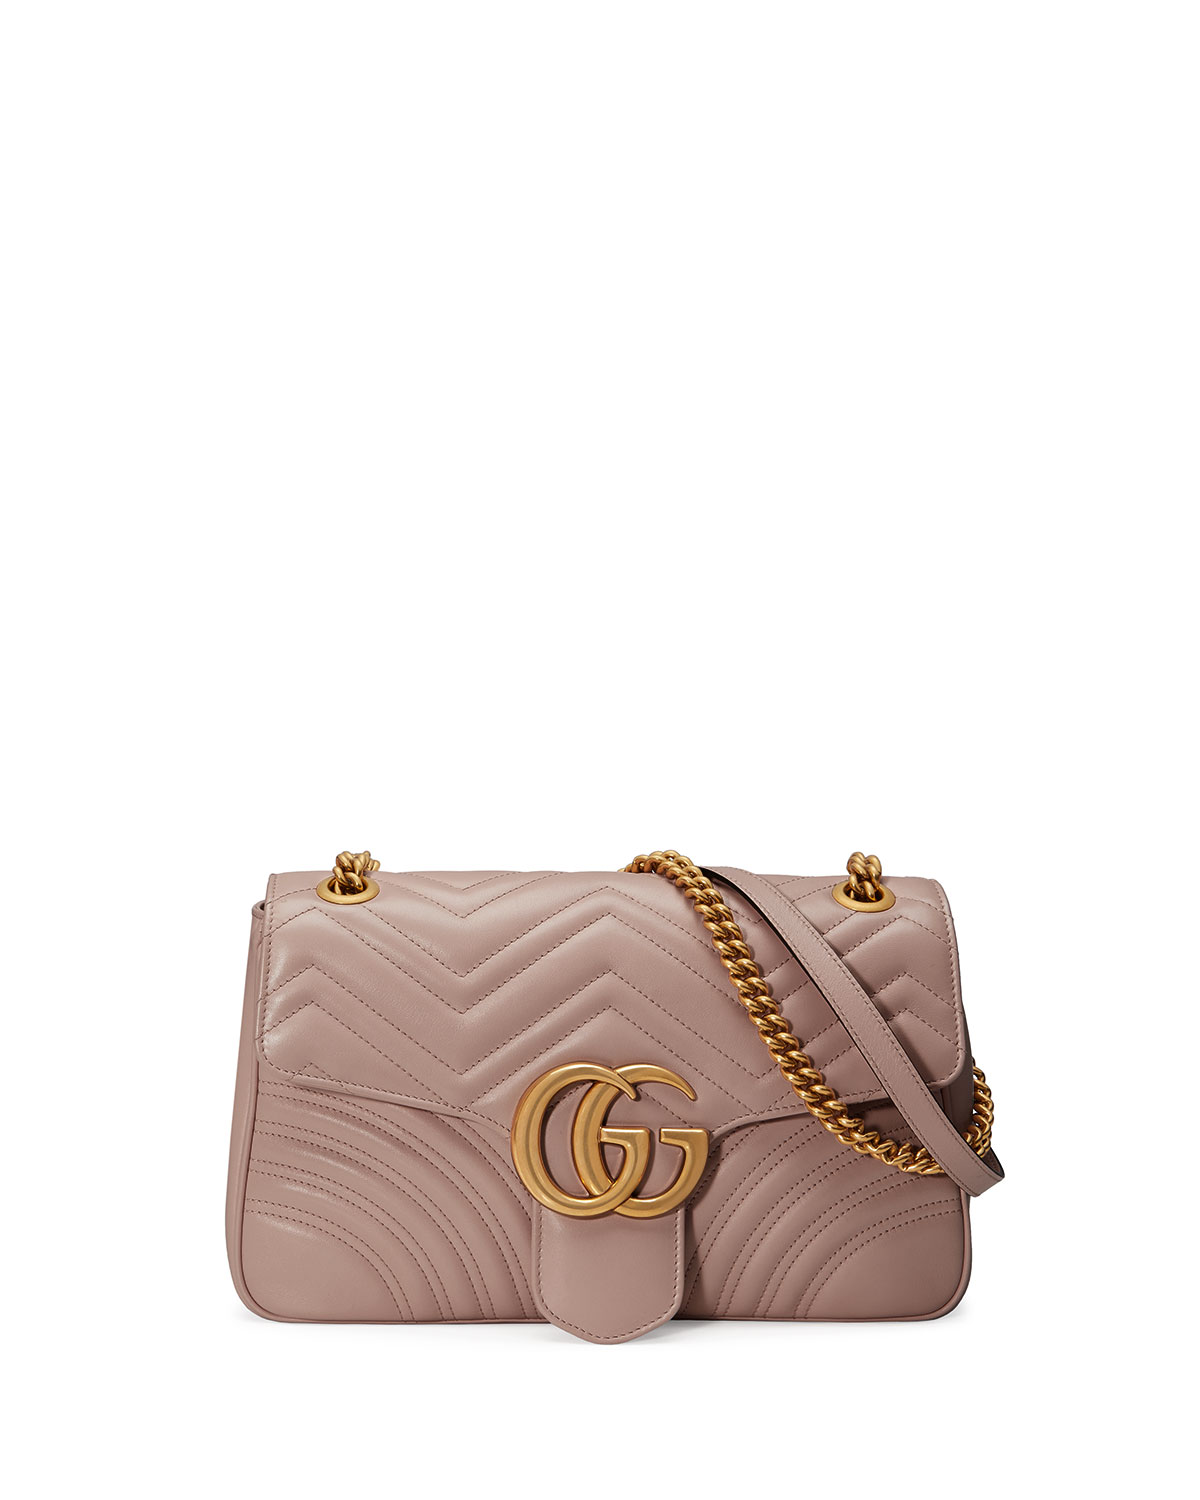 8320e75e00f051 Gucci GG Marmont Medium Leather Shoulder Bag | Neiman Marcus